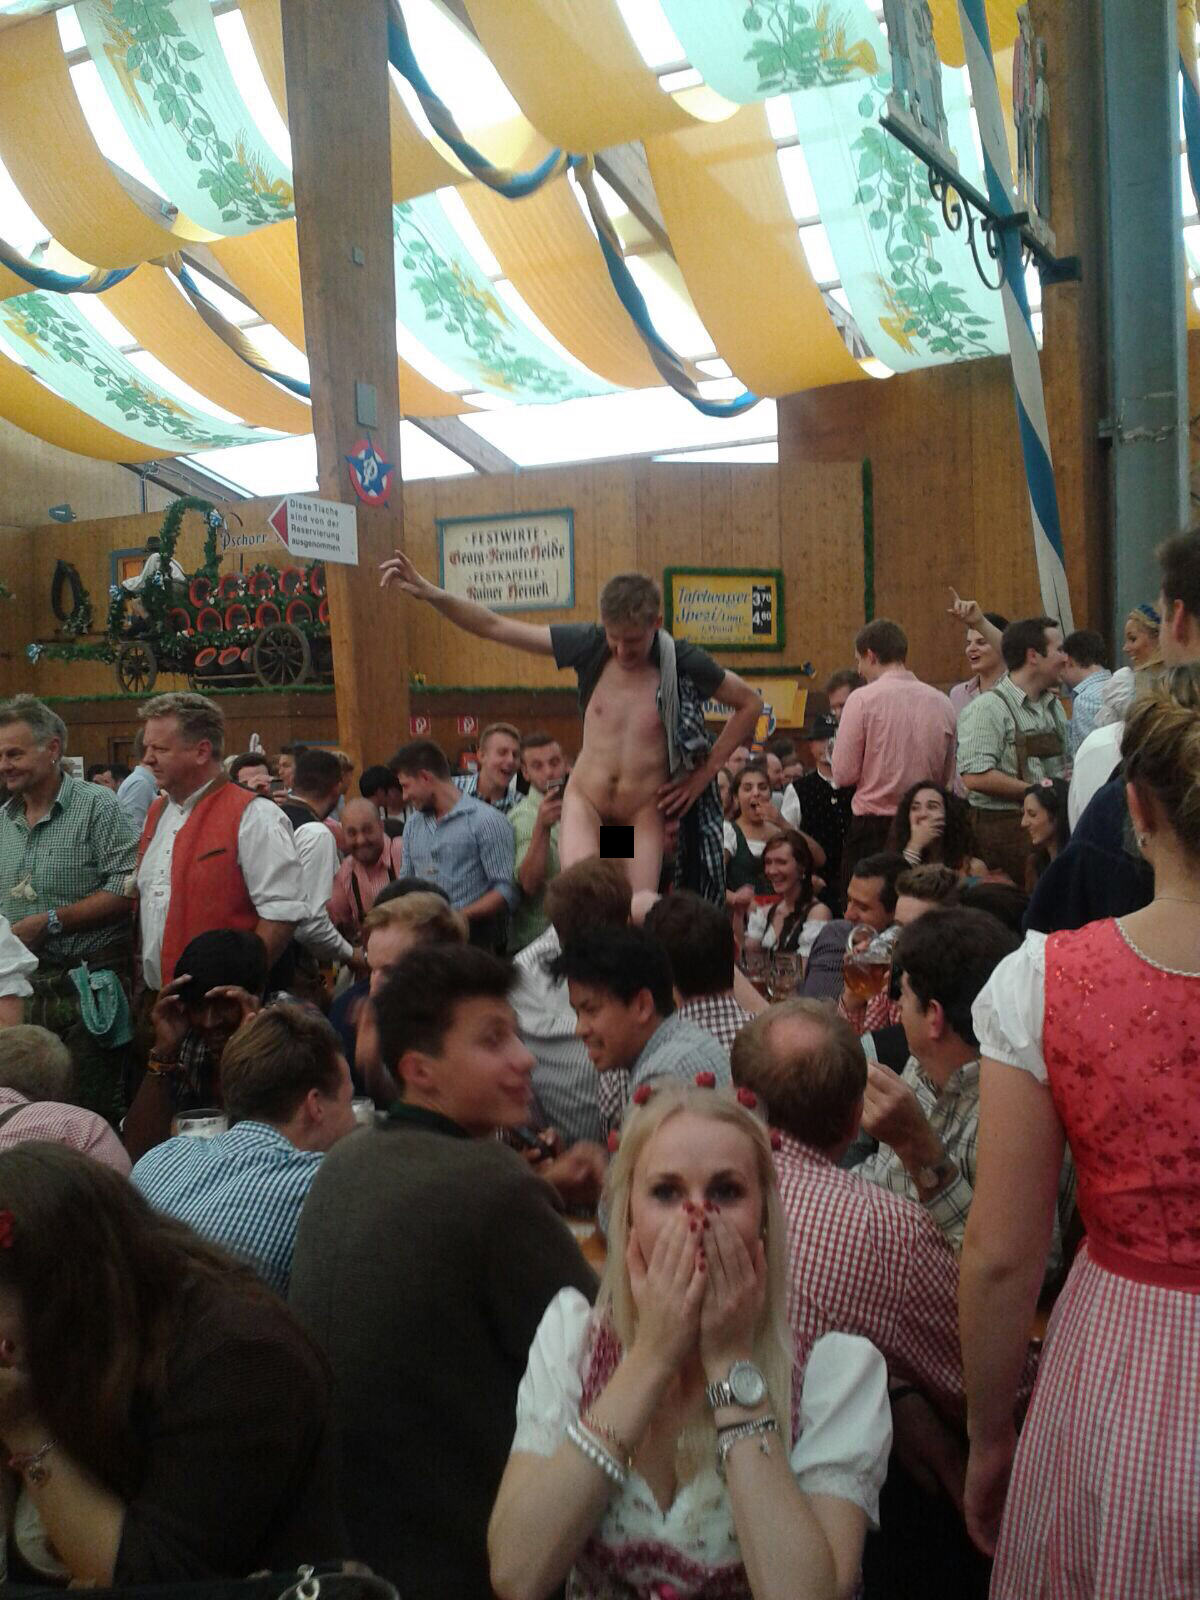 The Classic And Messy Moments Of Oktoberfest 2015 (NSFW) UNILAD okt177079